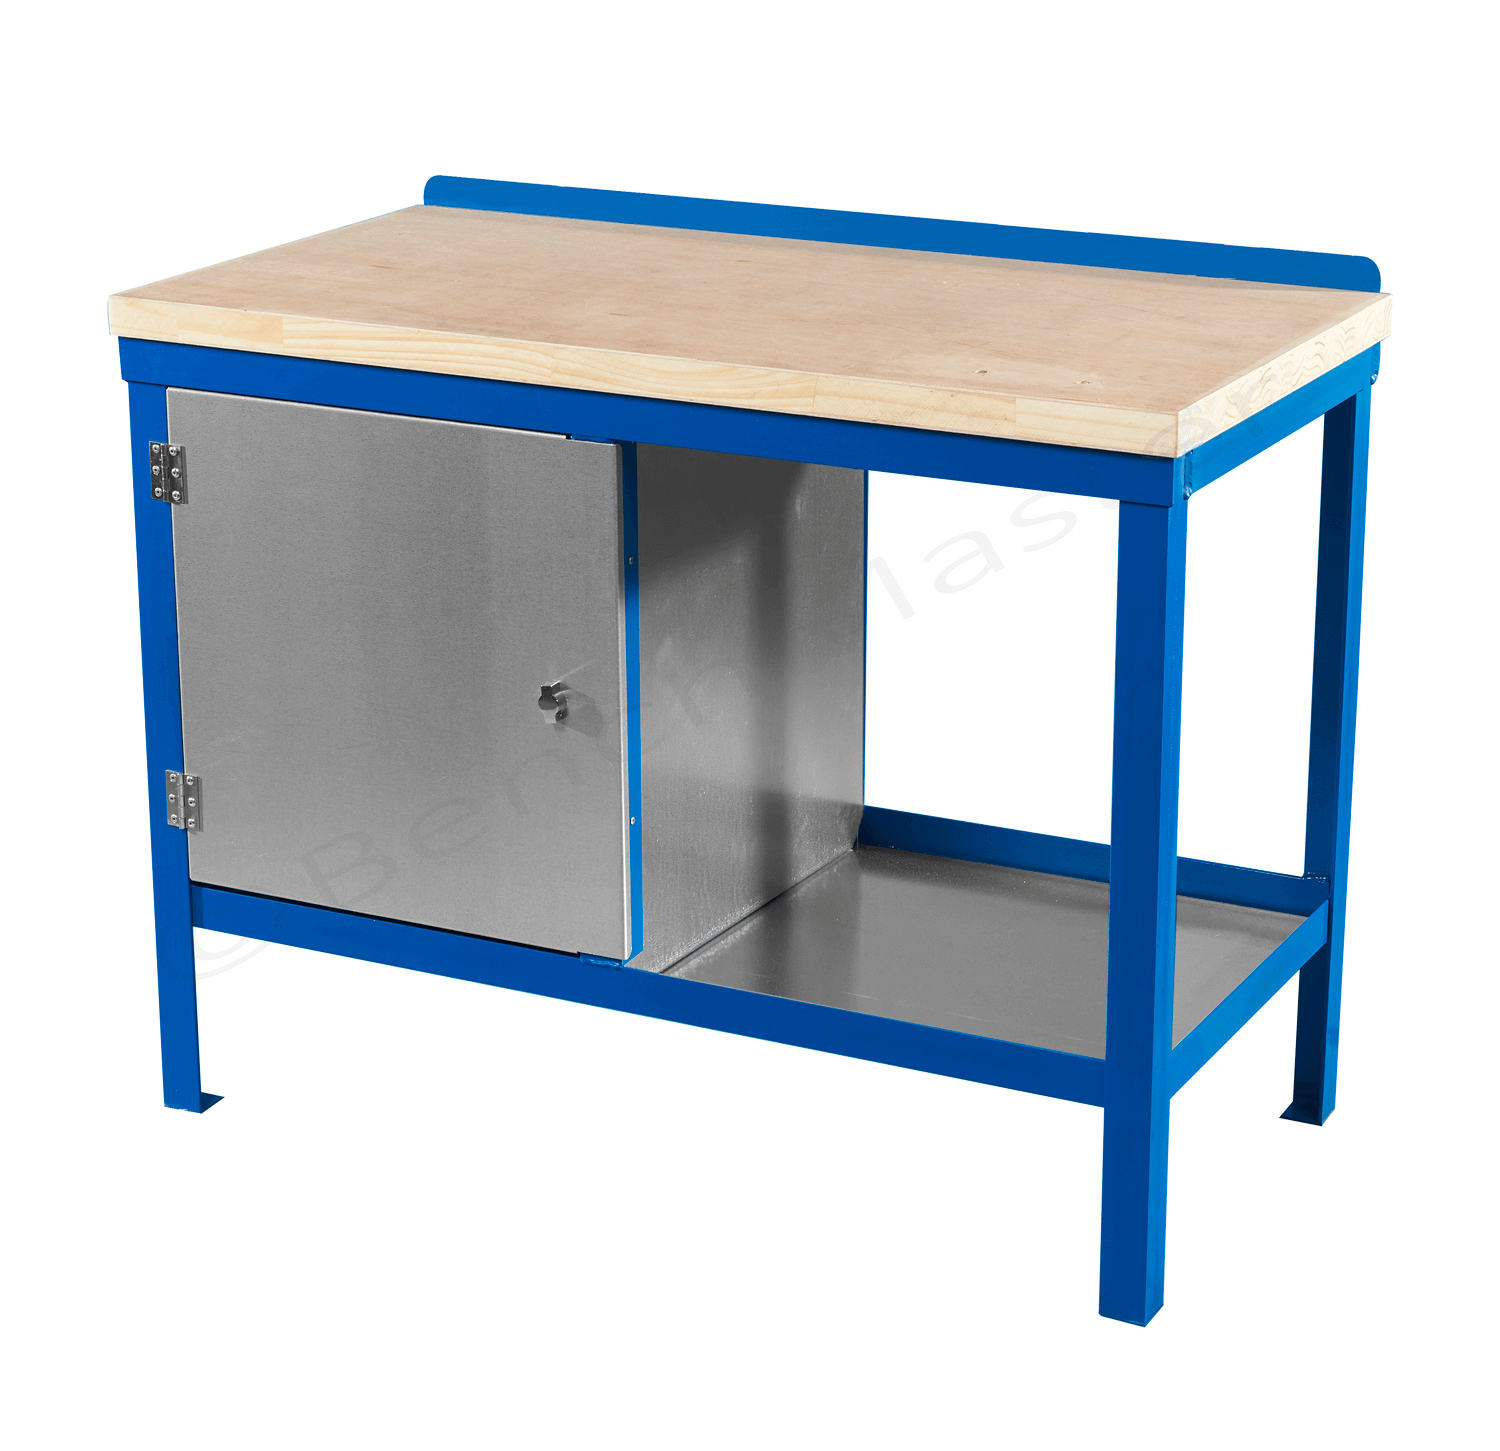 Incredible Engineering Heavy Duty Workbench Andrewgaddart Wooden Chair Designs For Living Room Andrewgaddartcom